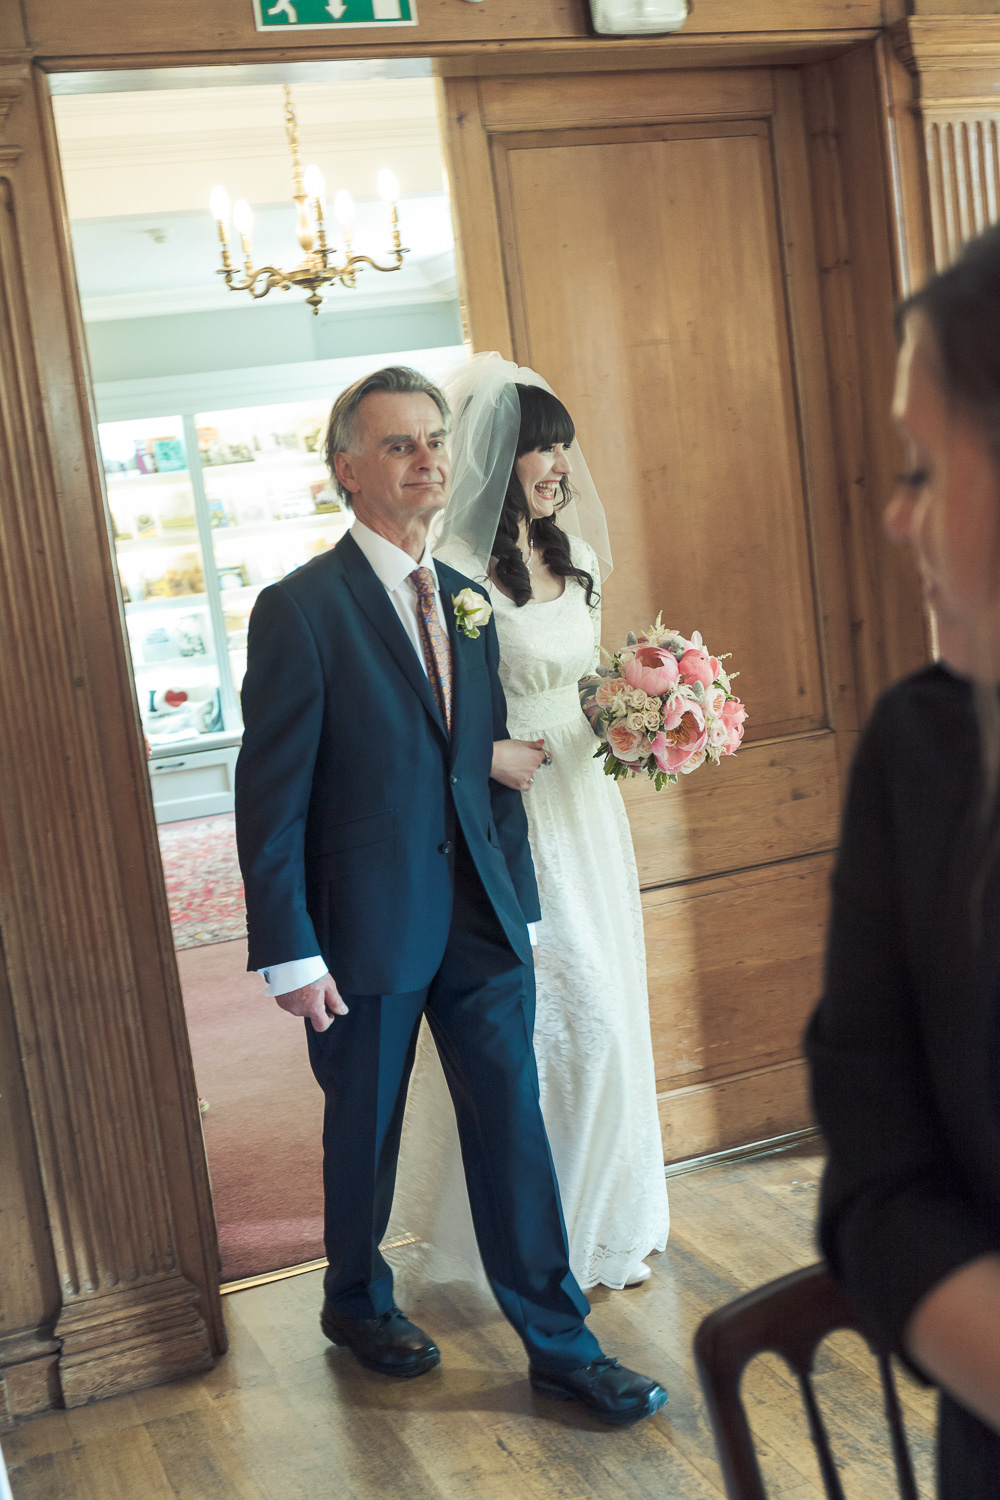 burgh-house-hampstead-north-london-wedding-0042.jpg